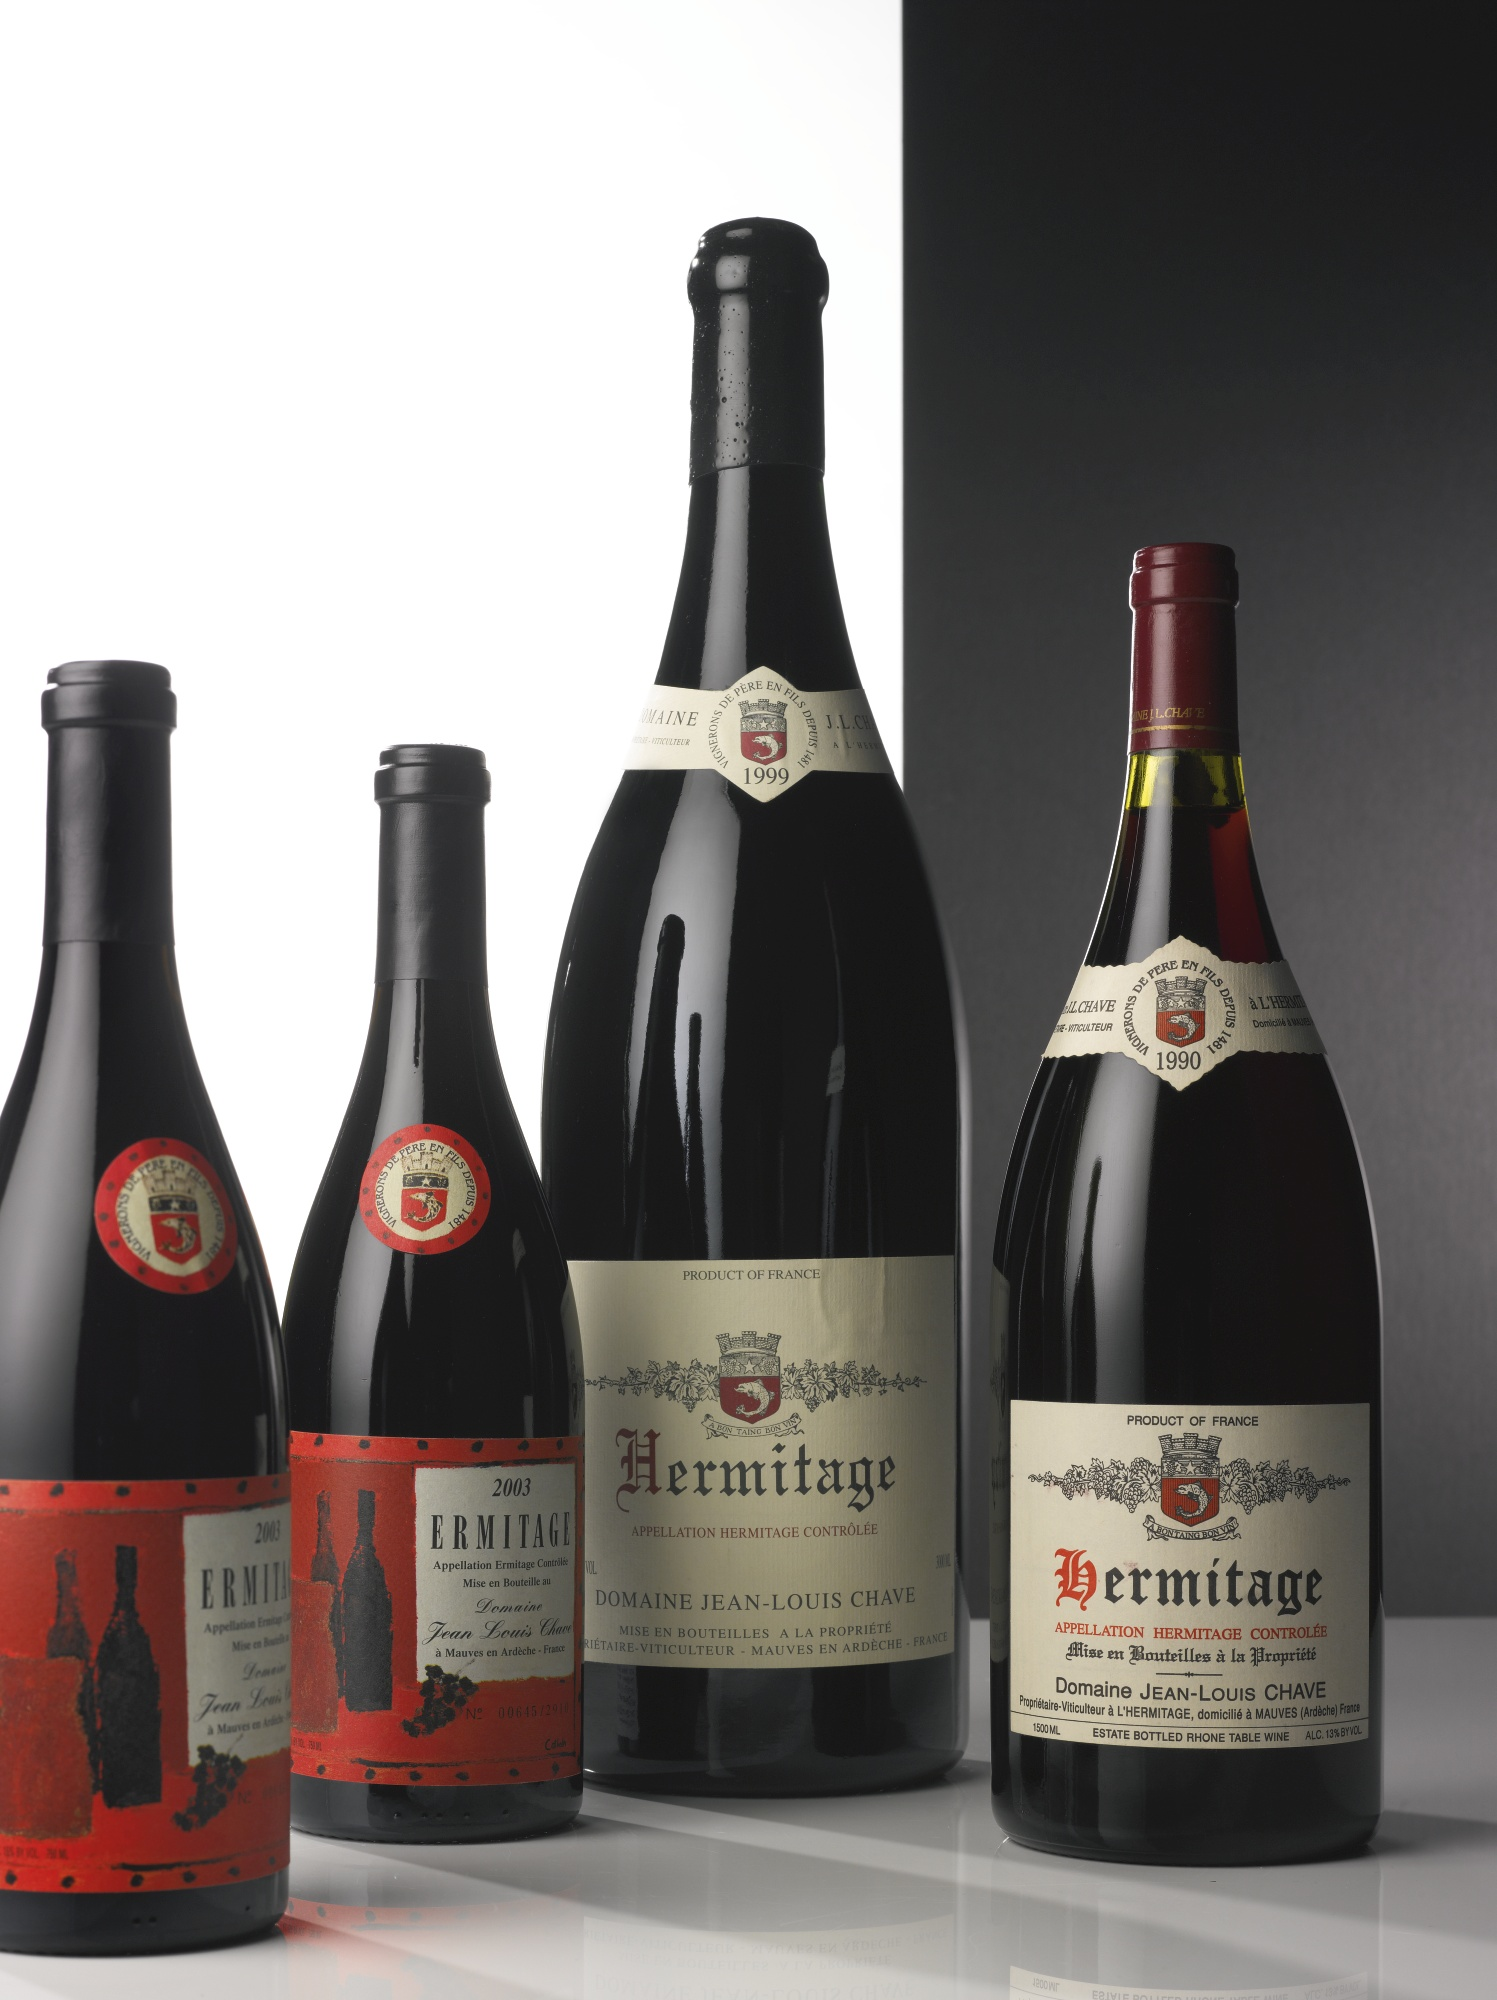 HERMITAGE ROUGE 1990 JEAN-LOUIS CHAVE